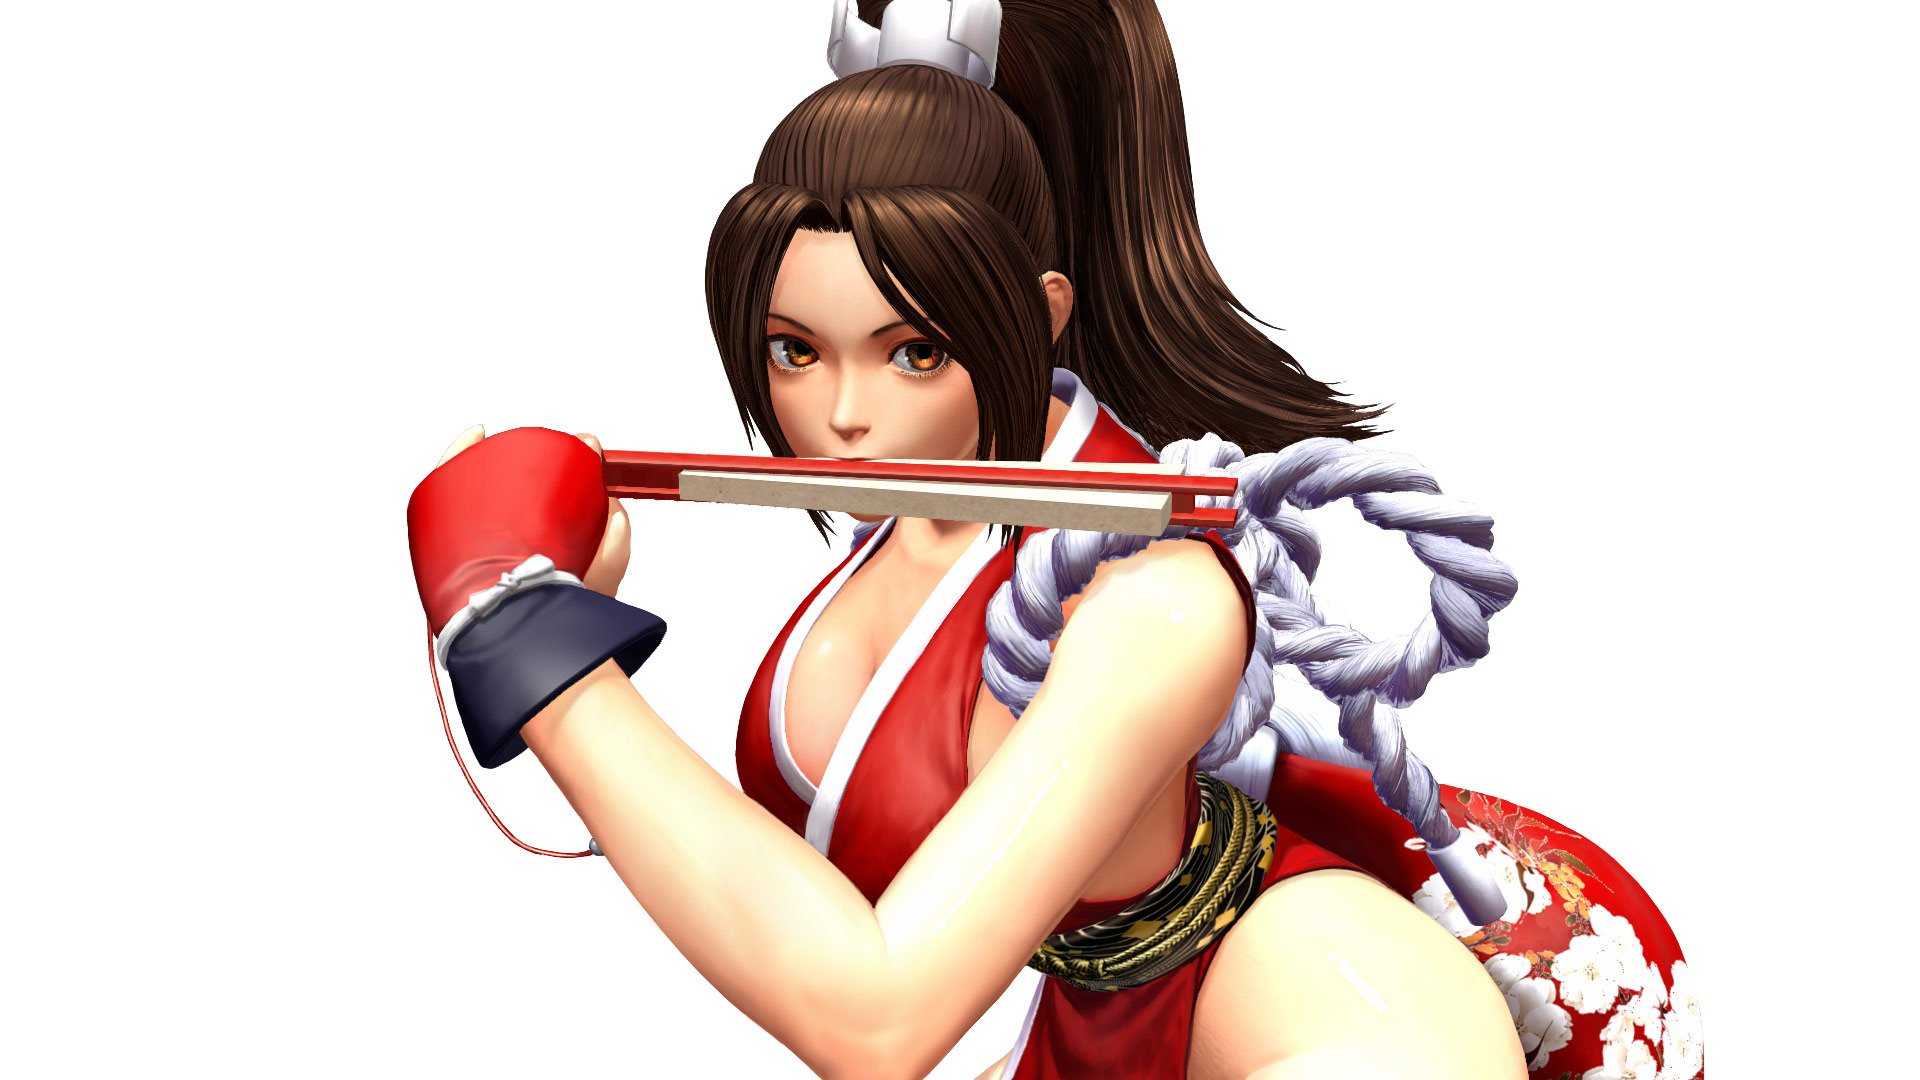 Mai Shiranui screenshots images and pictures   Giant Bomb 1920x1080